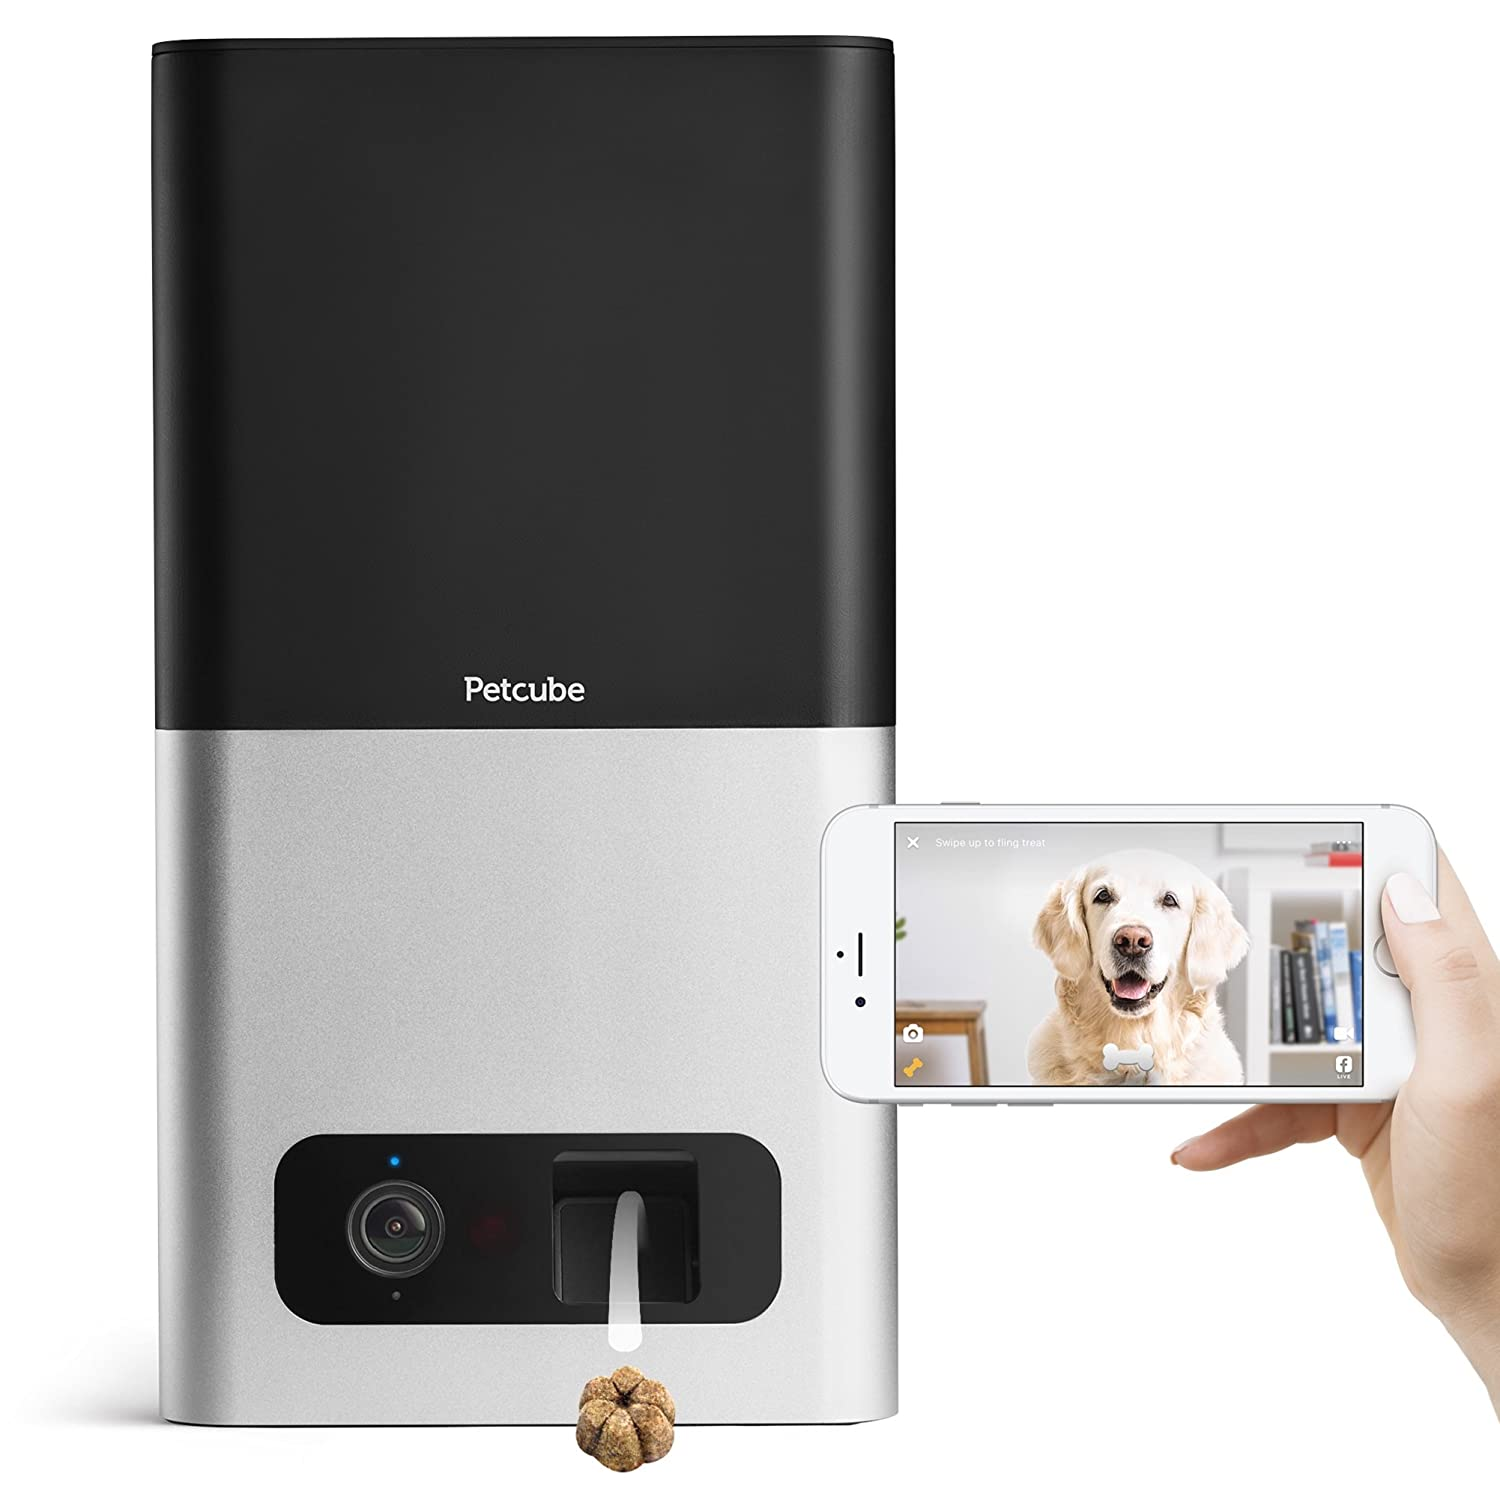 pet camera reviews : Buy the Petcube on Amazon right now